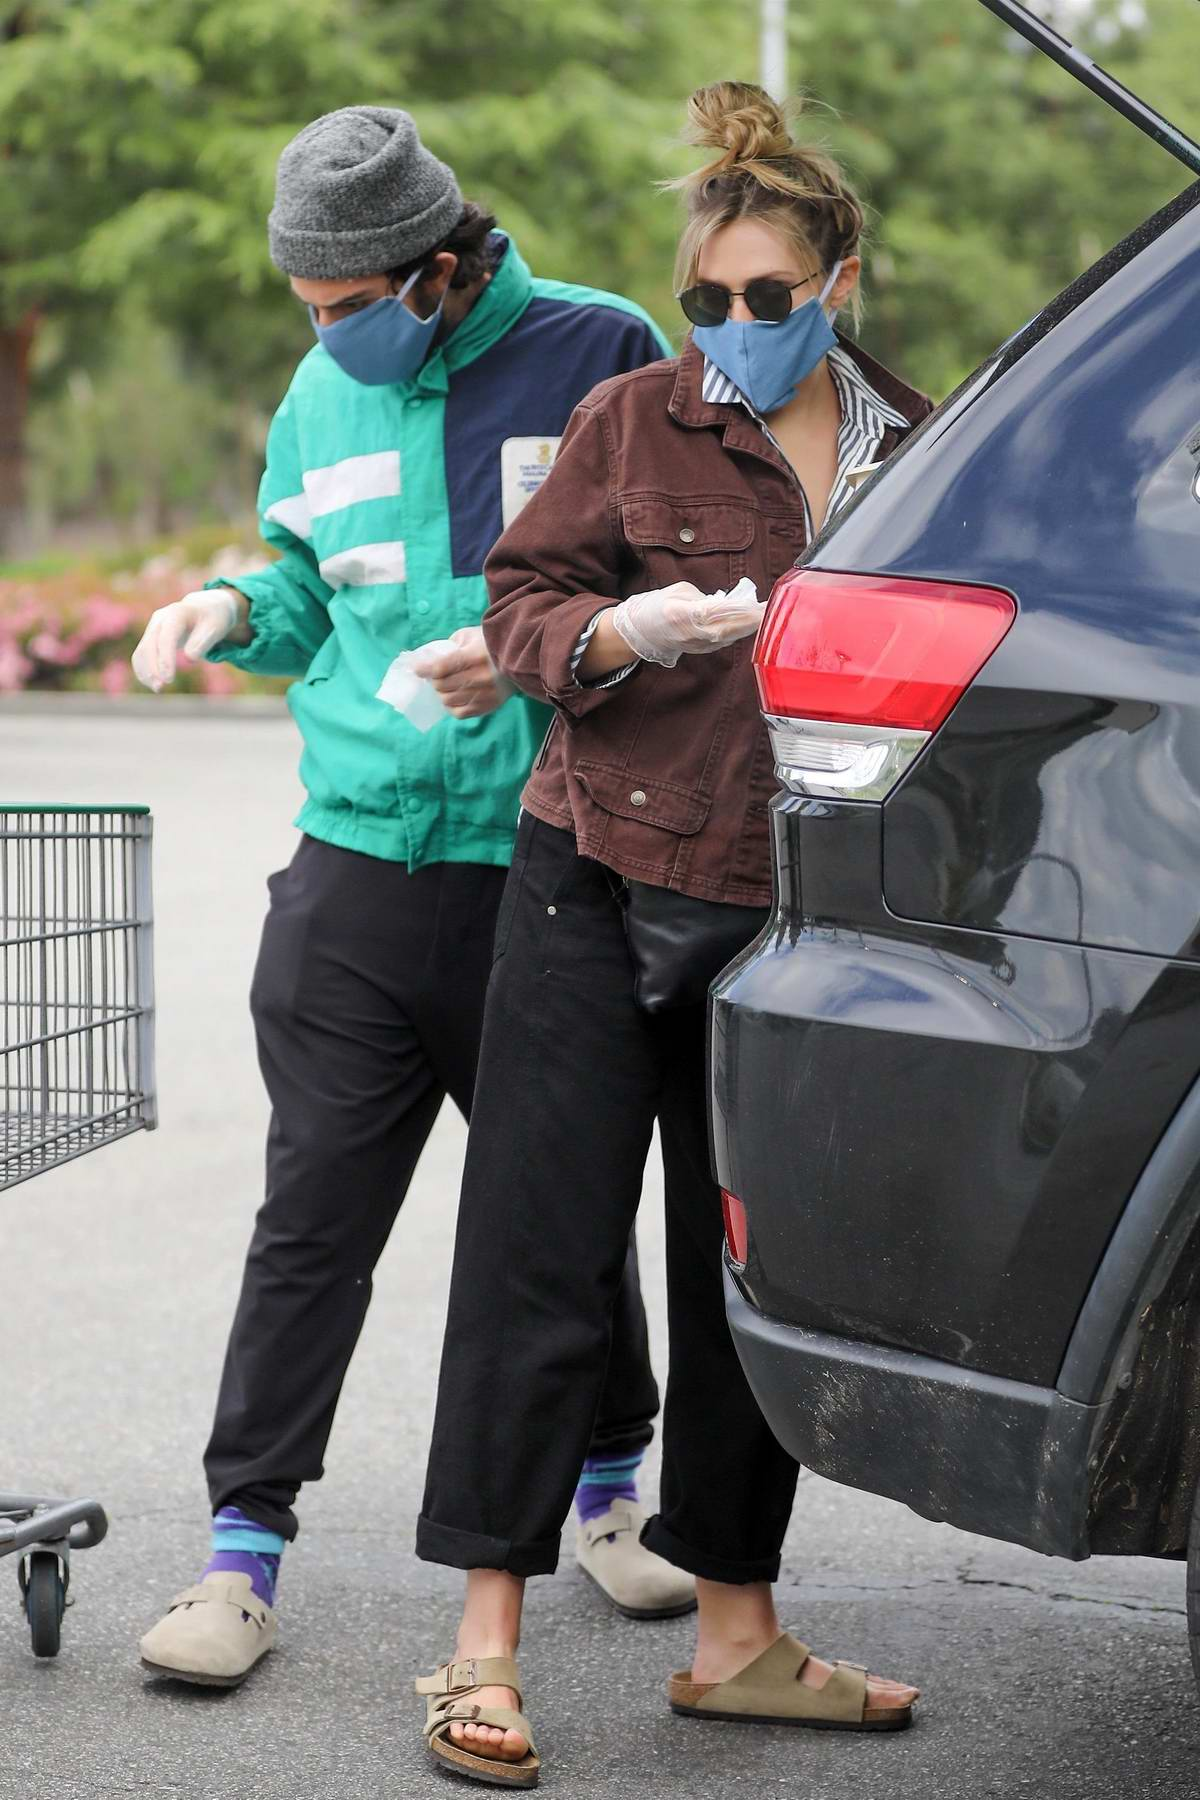 Elizabeth Olsen and Robbie Arnett step out for some grocery shopping at Erewhon organic in Calabasas, California